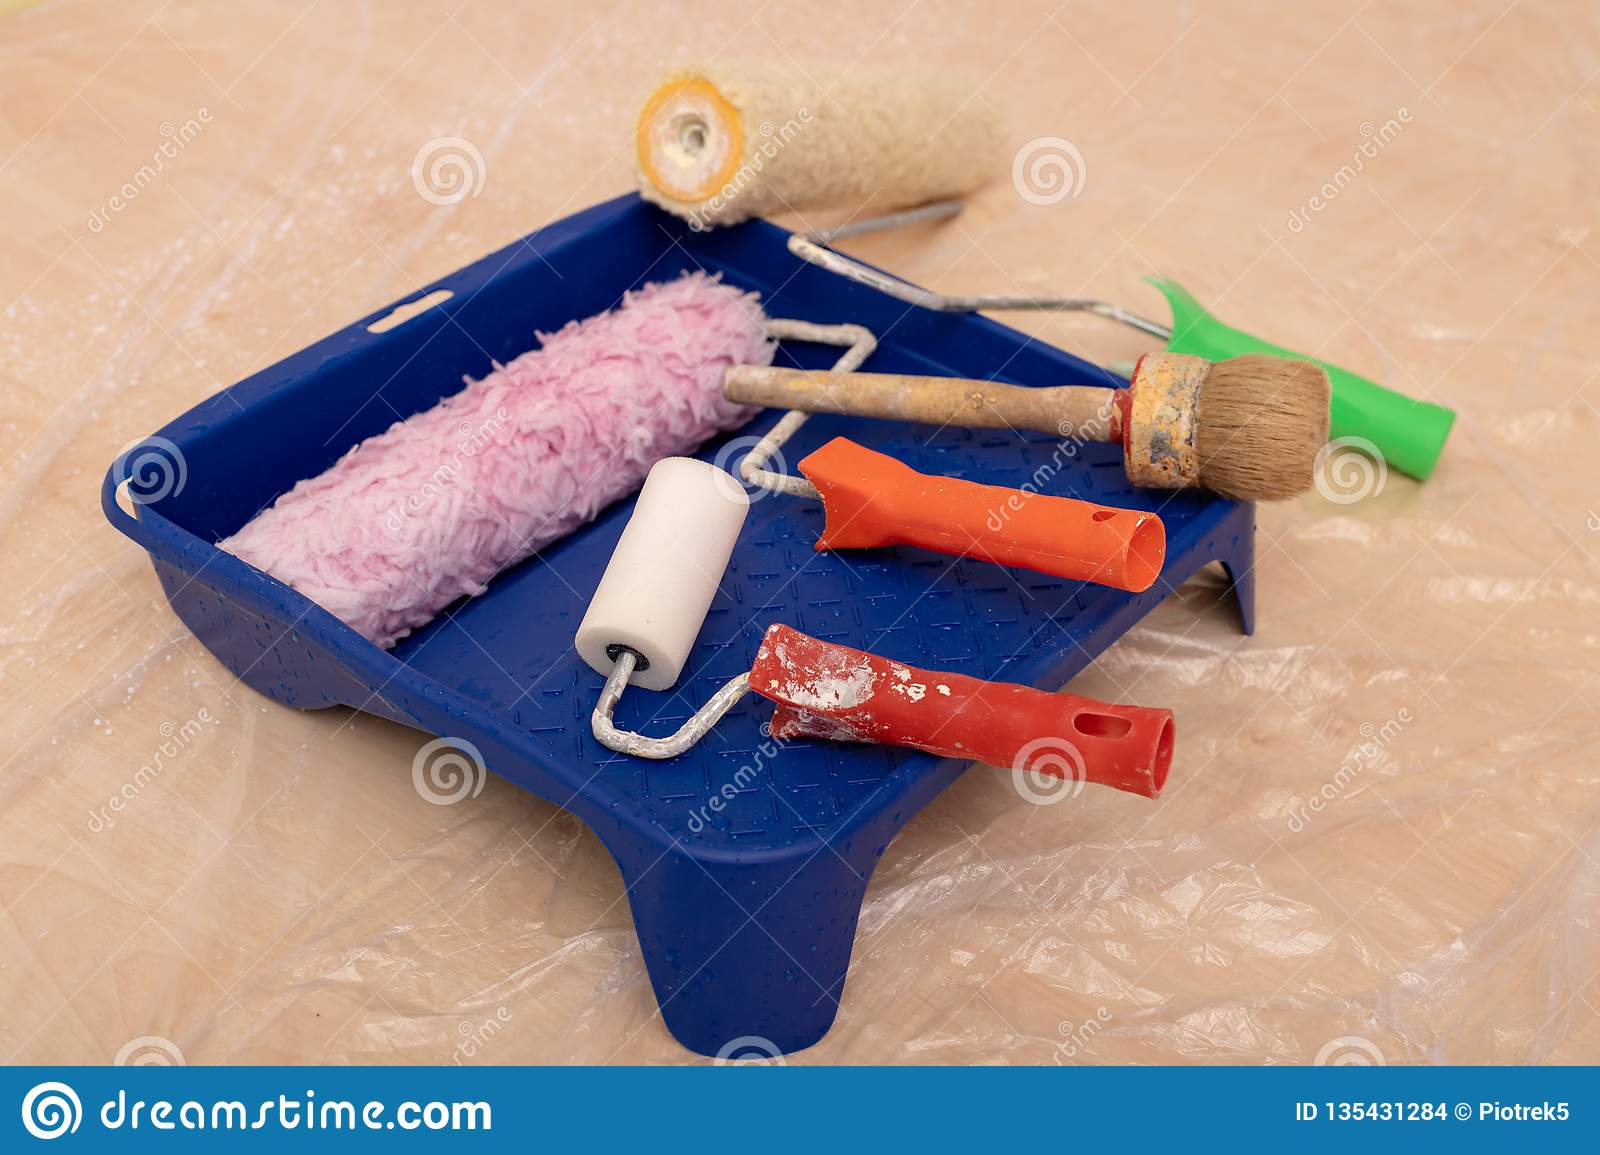 Paint Roller Brush And Other Accessories Renovation And Painting